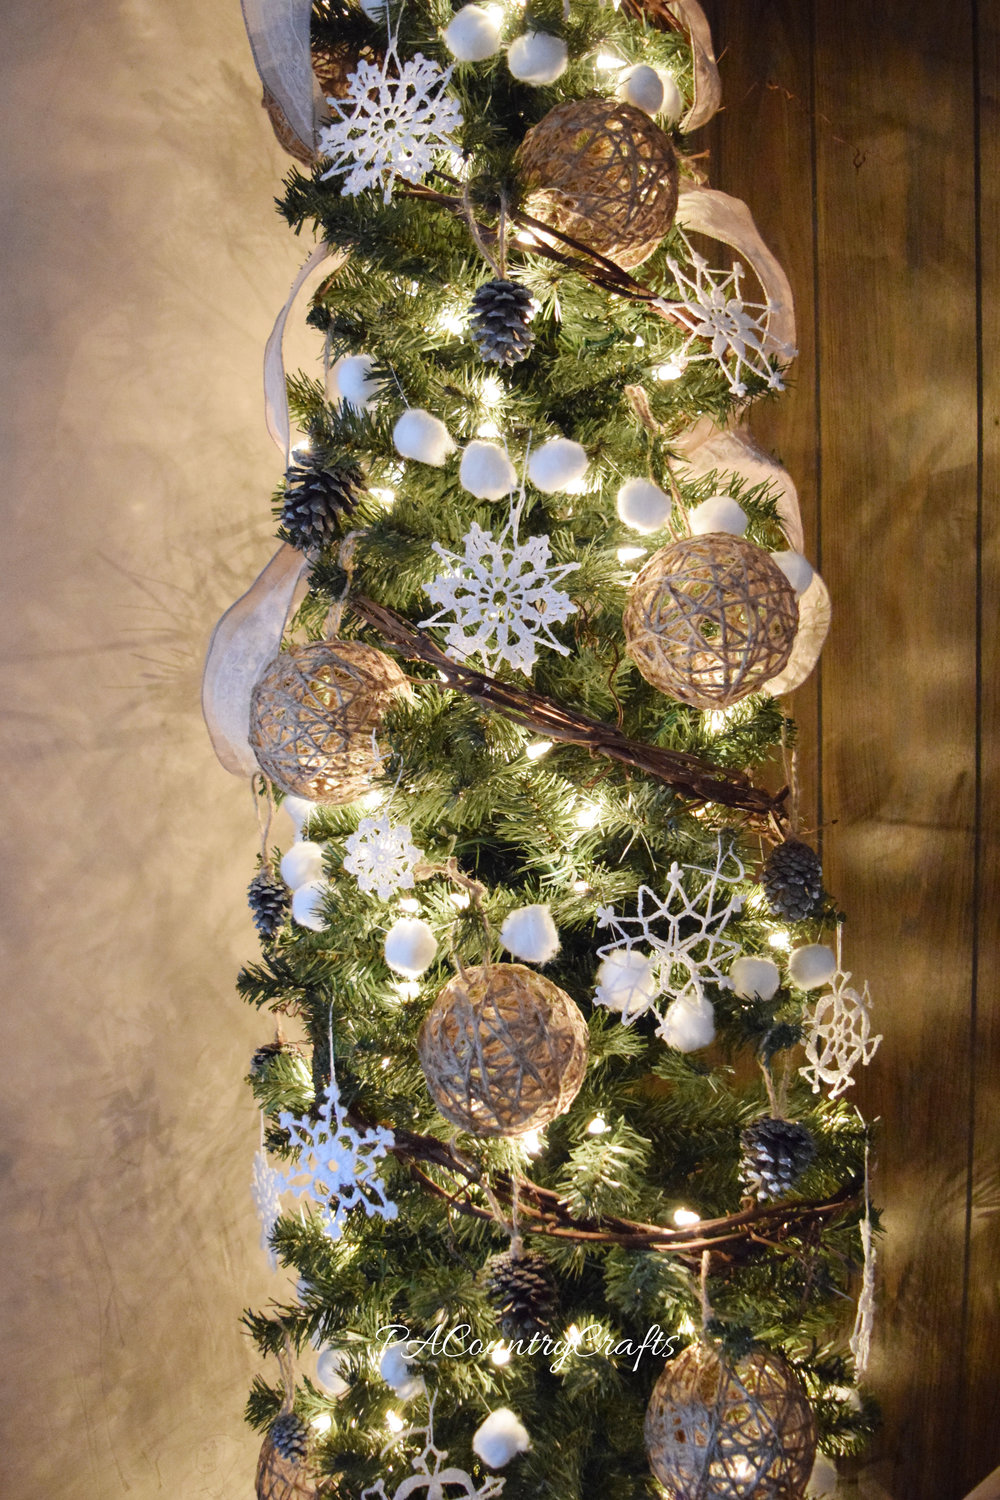 Rustic tree decor made on a tight budget!